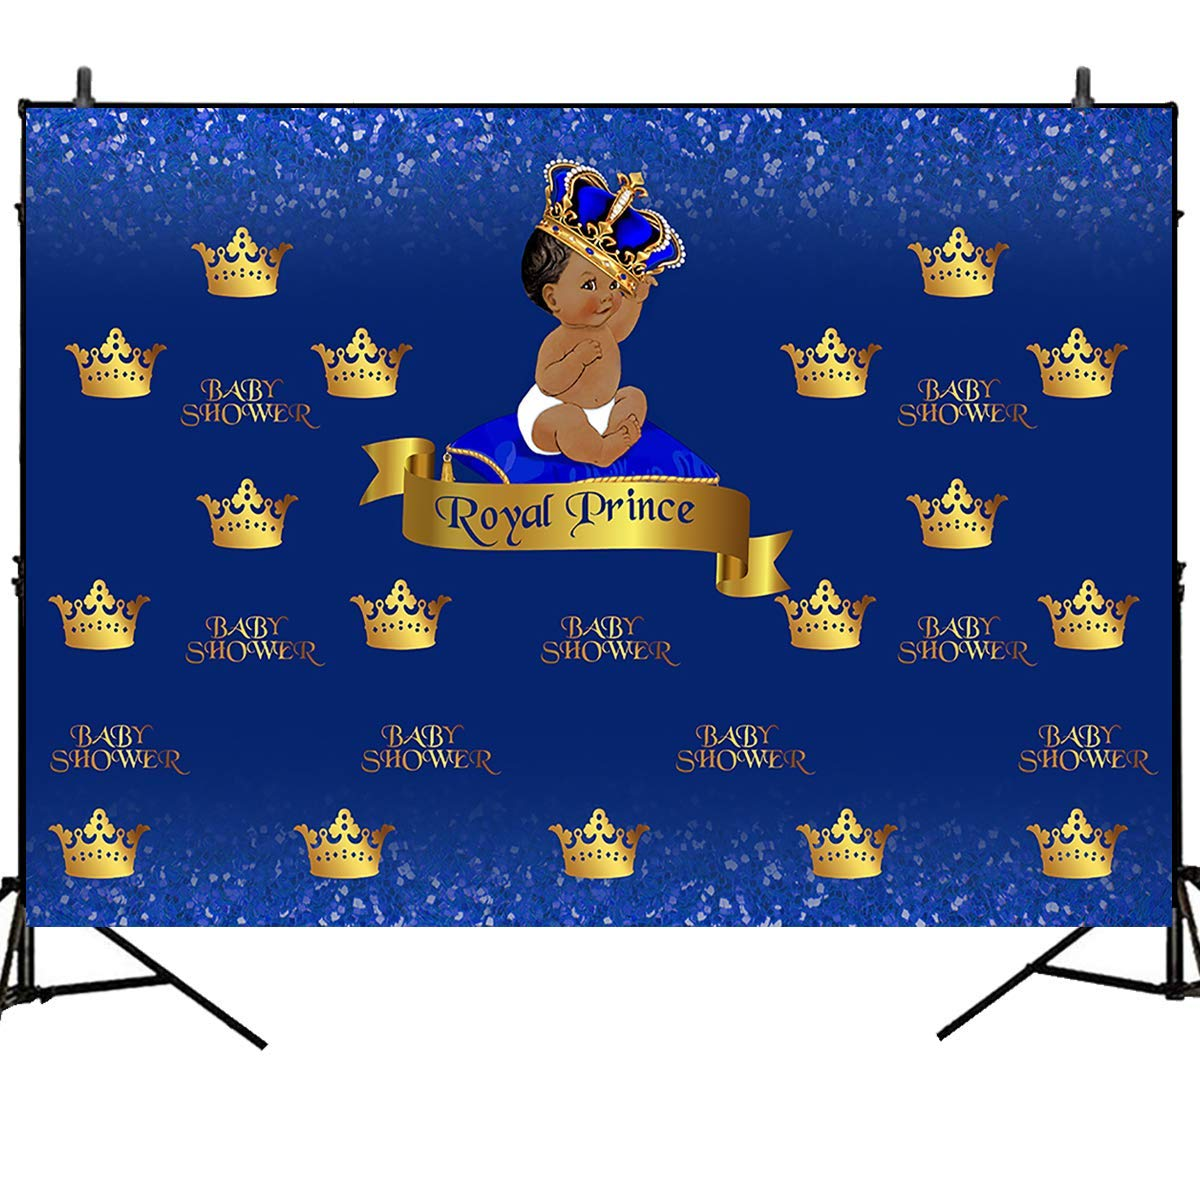 Mehofoto Royal Prince Baby Shower Backdrop Crowned Little Boy Photography Background 7x5ft Step and Repeat Vinyl Photo Background for Newborn